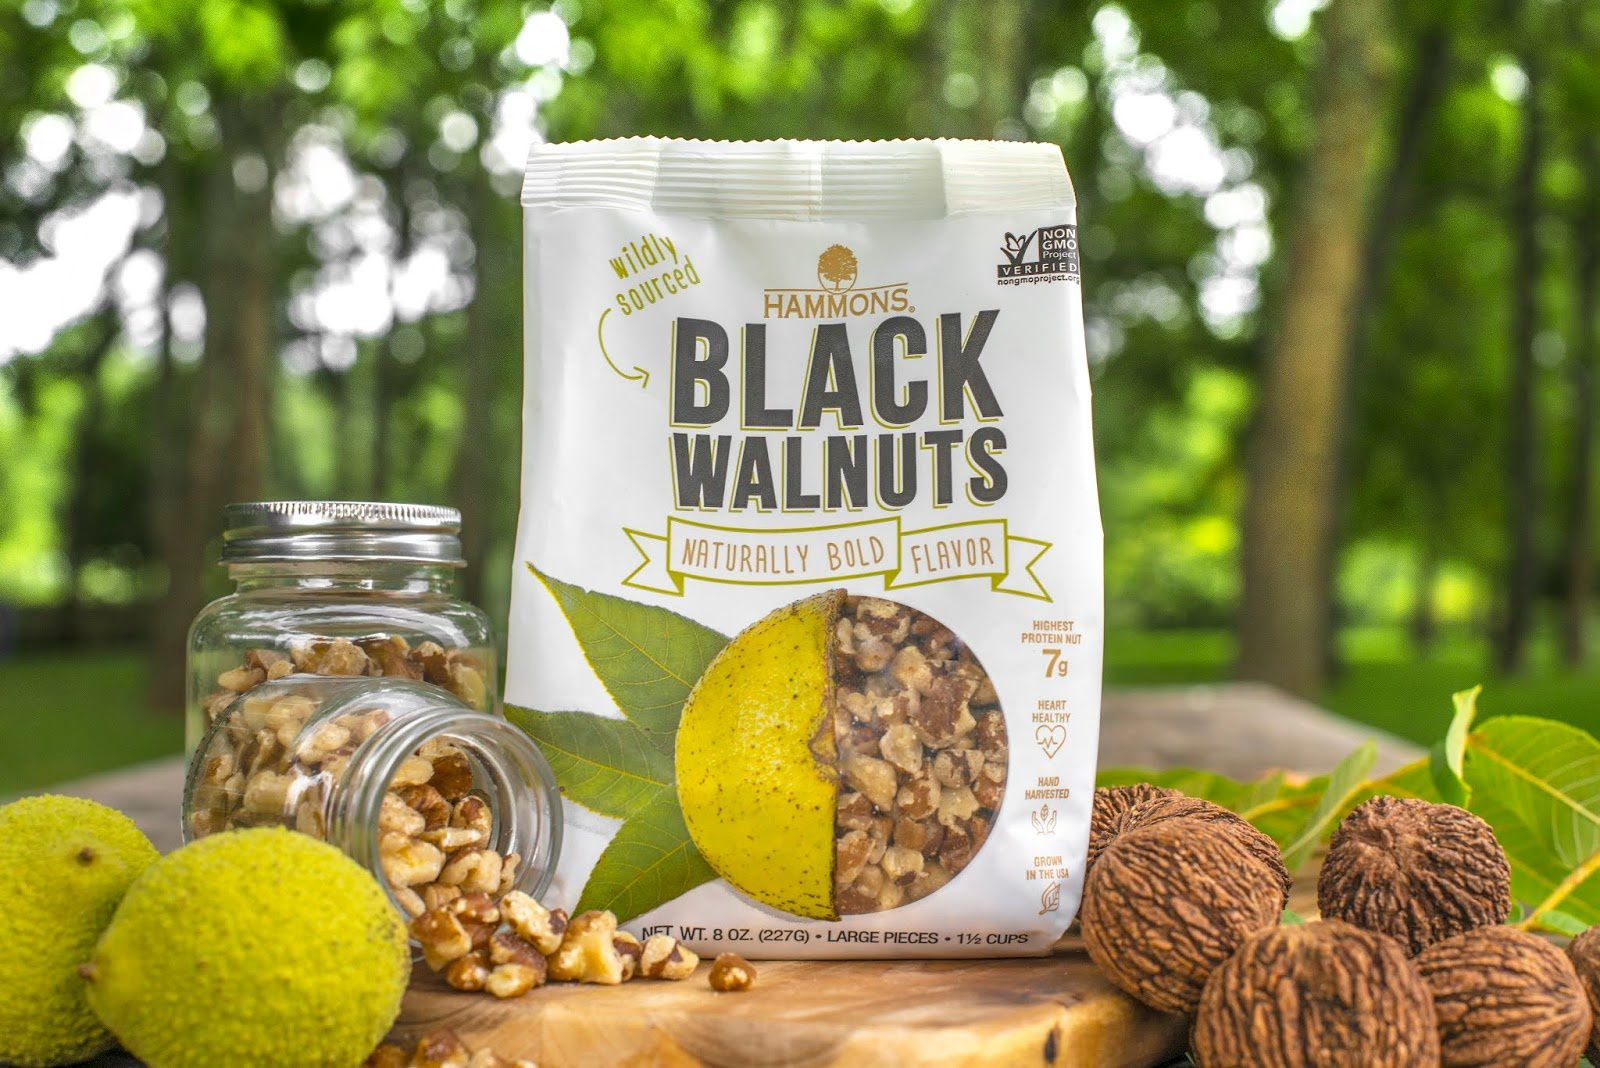 Black Walnuts - Hammons Products Company (noix noire) I Design : Revel Advertising, Springfield, Etats-Unis  (octobre 2018)